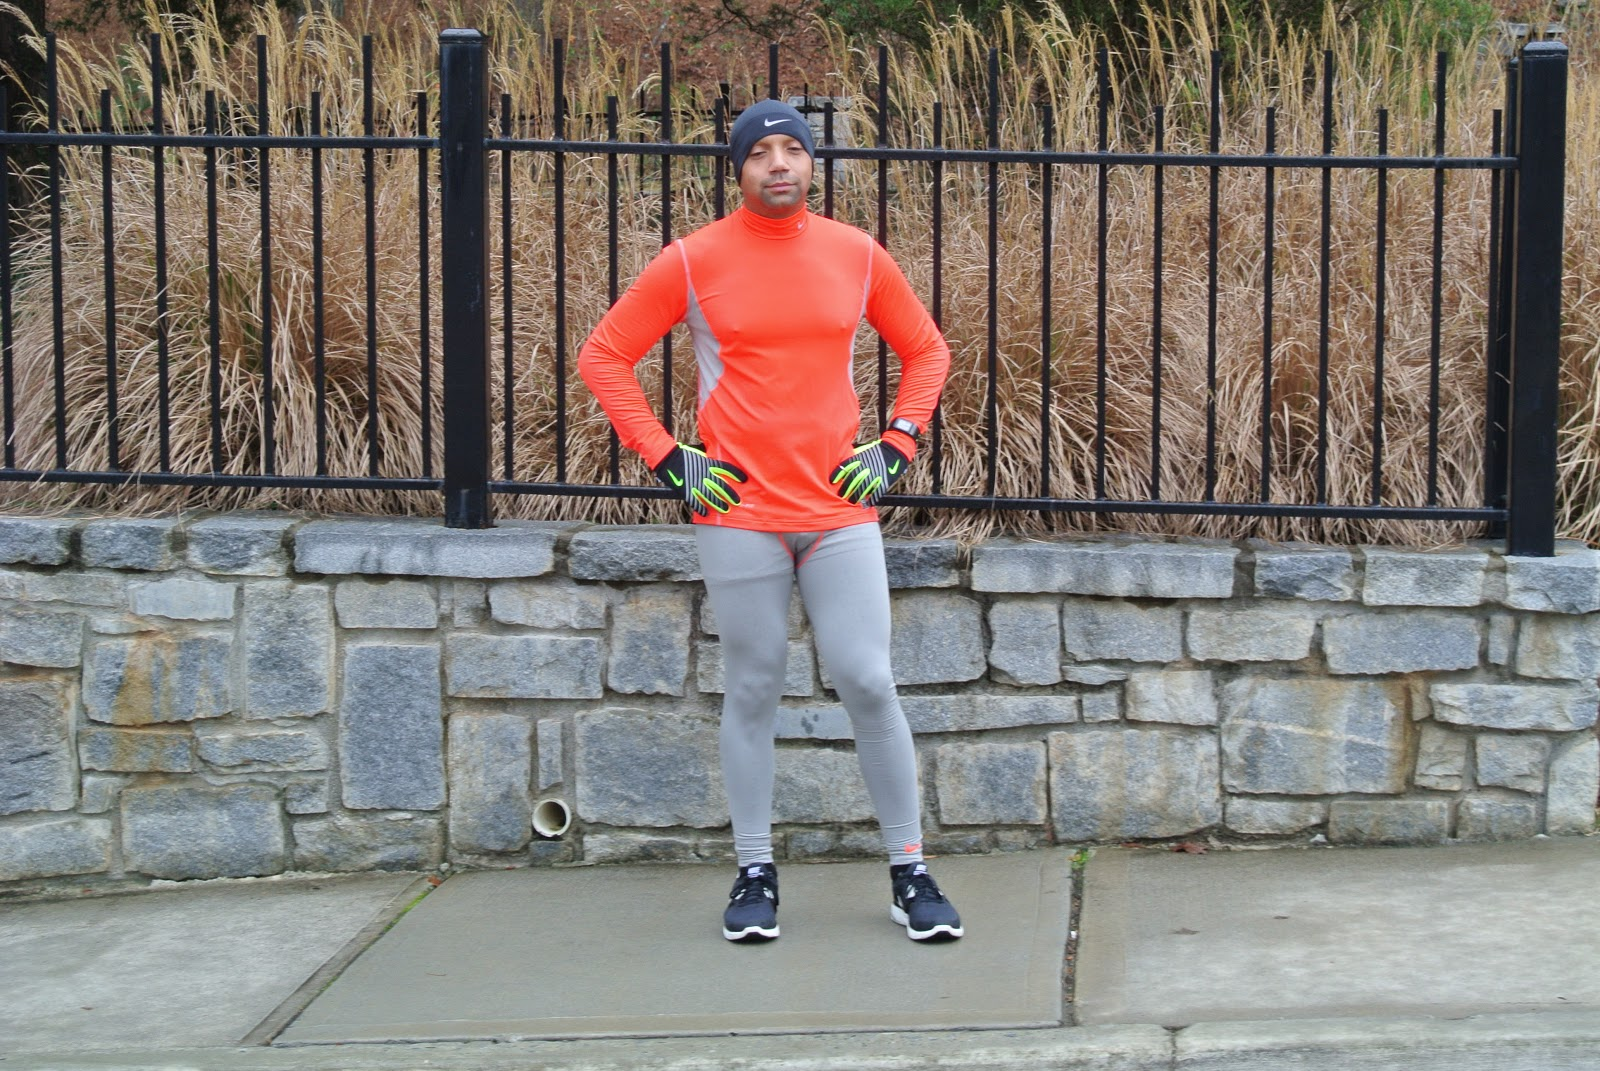 550f354db2f30 What he is wearing: Nike Pro combat Dri-fit Stay warm Hyperwarm Series Compression  pants in grey with coral trim $50.00. Top: Nike Pro combat Dri-fit Stay ...